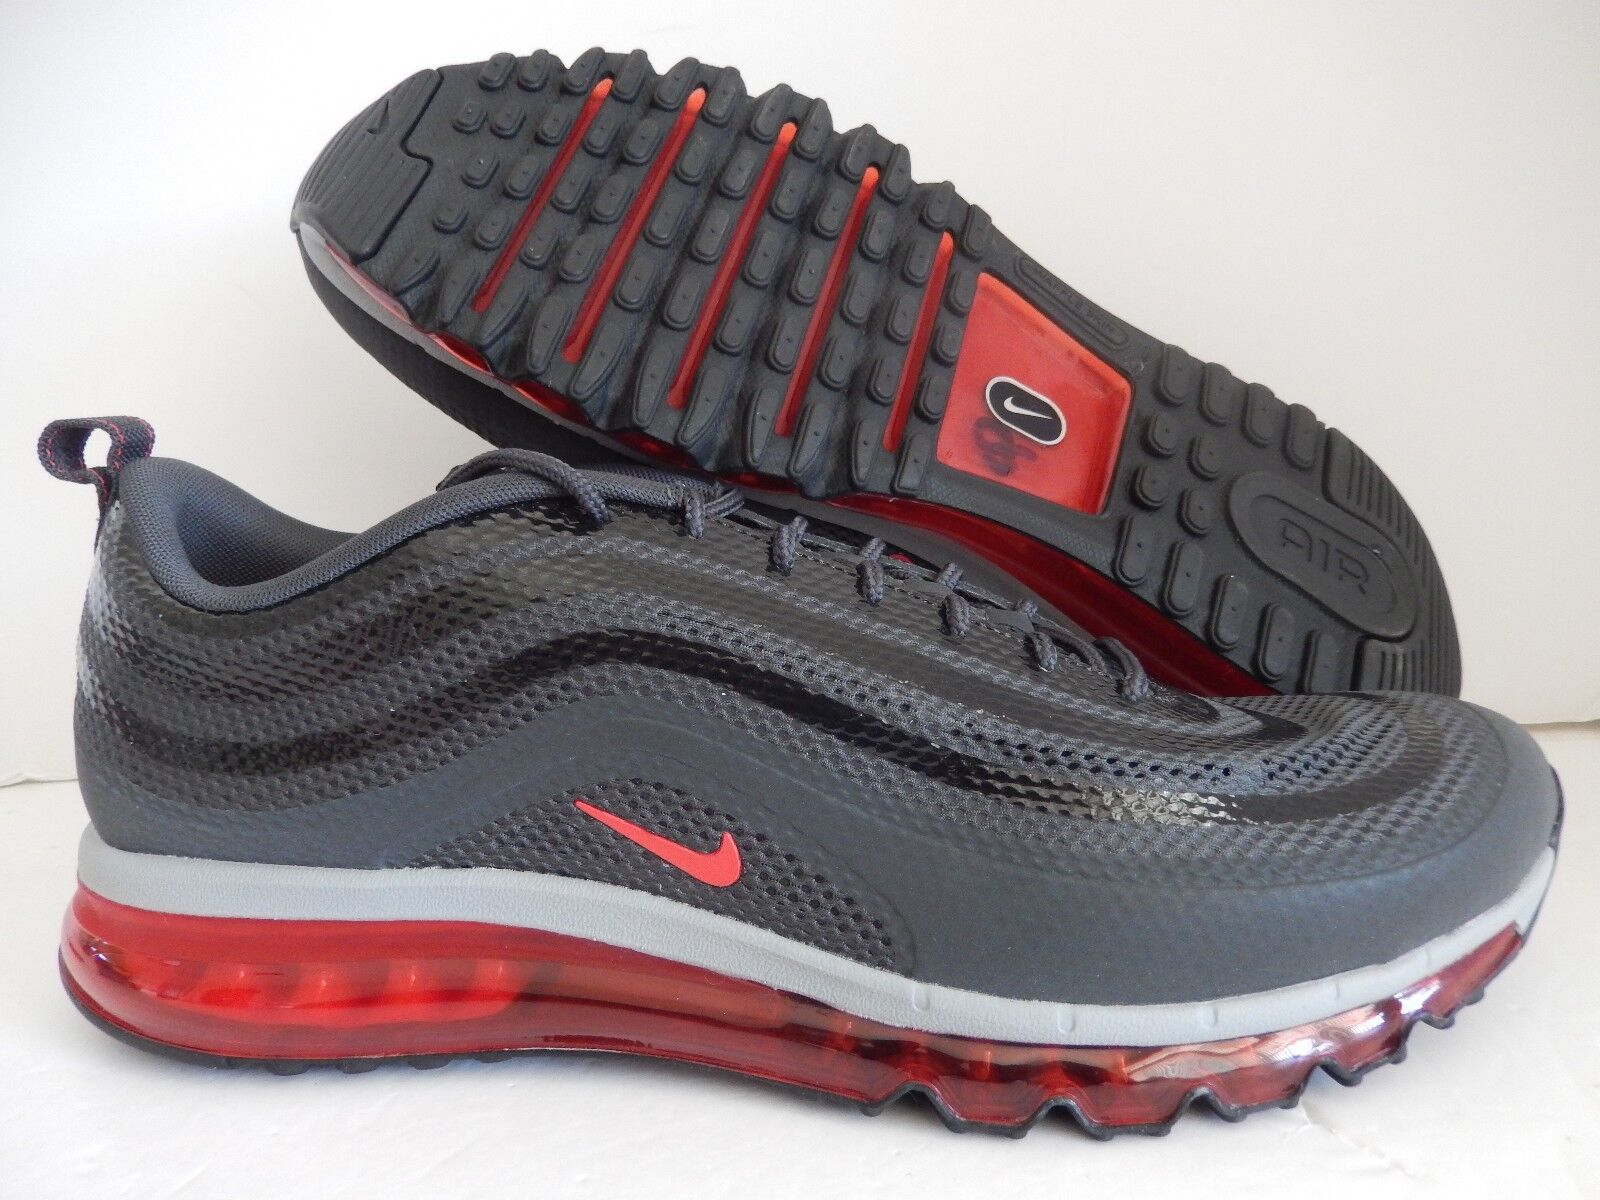 NIKE AIR MAX 97 2018 HYP HYPERFUSE ANTHRACITE-RED-GRY-BLACK SZ 12 [631753-002]